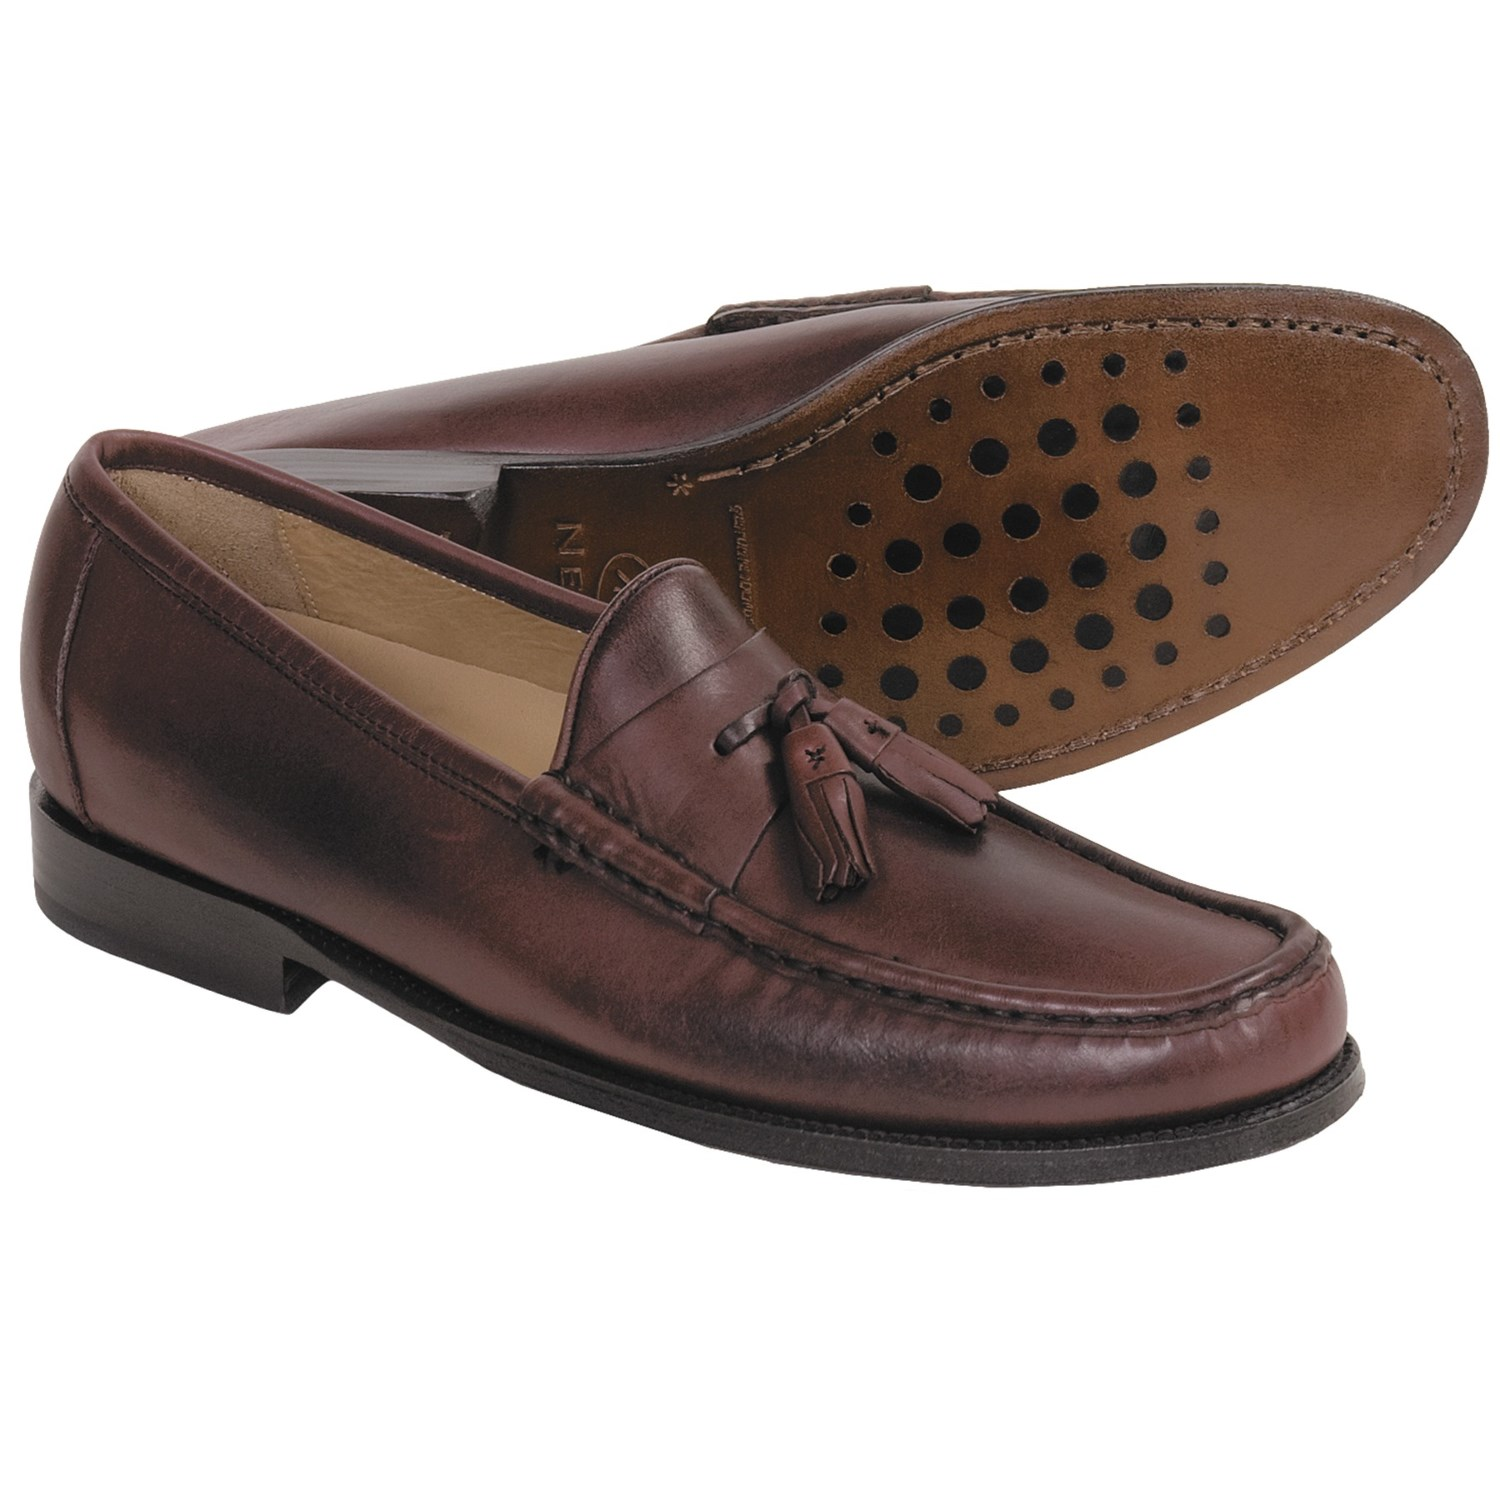 Neil M Scot Tassel Shoes - Loafers Leather (For Men) - Save 45%